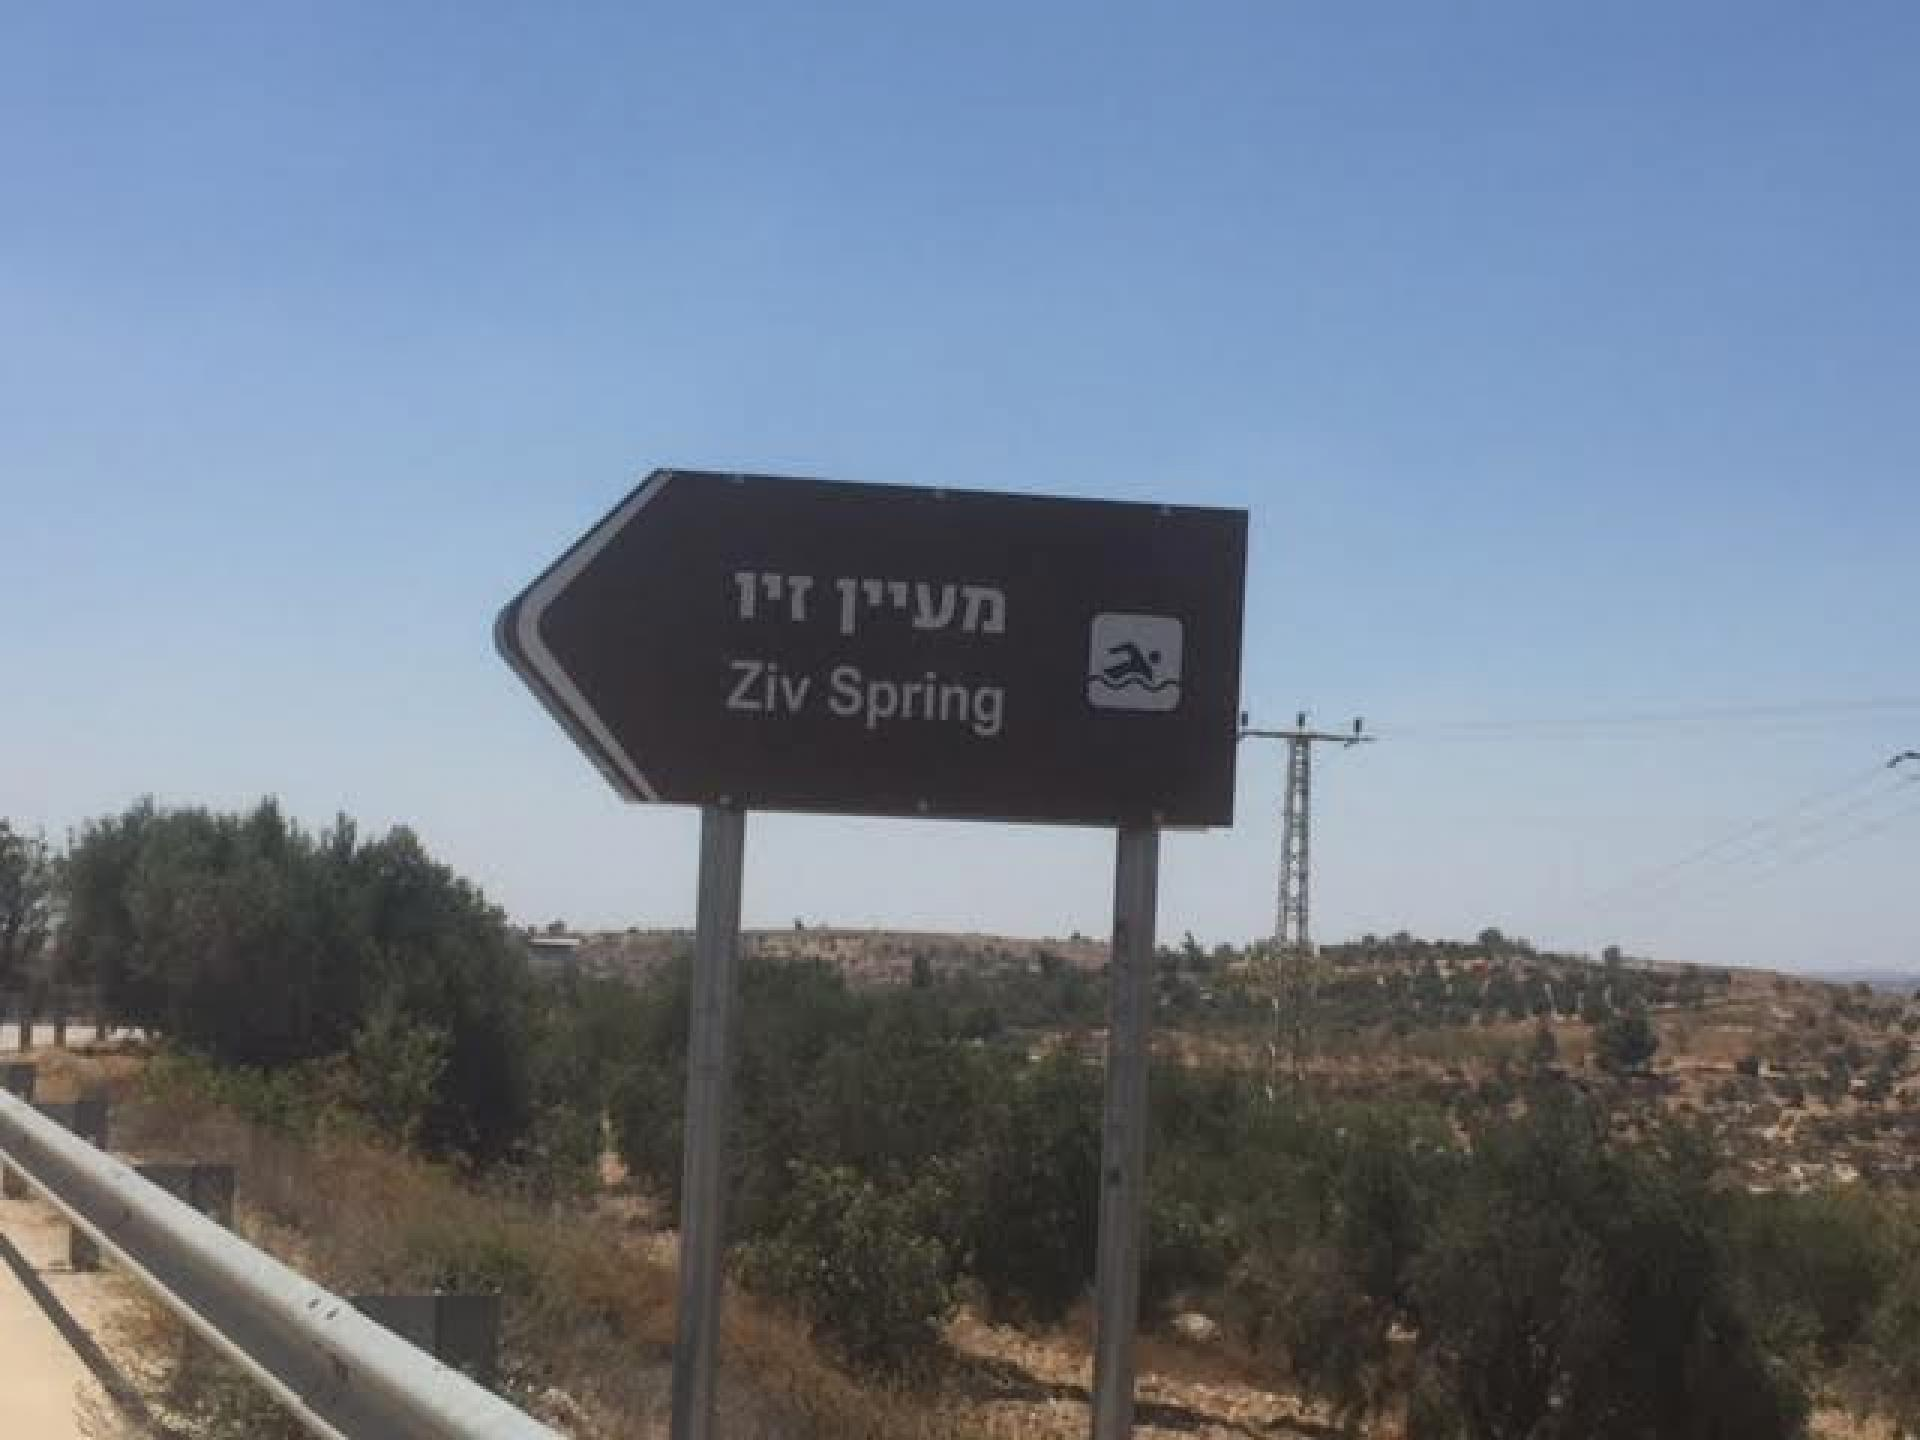 The arrow and the sign are only in Hebrew